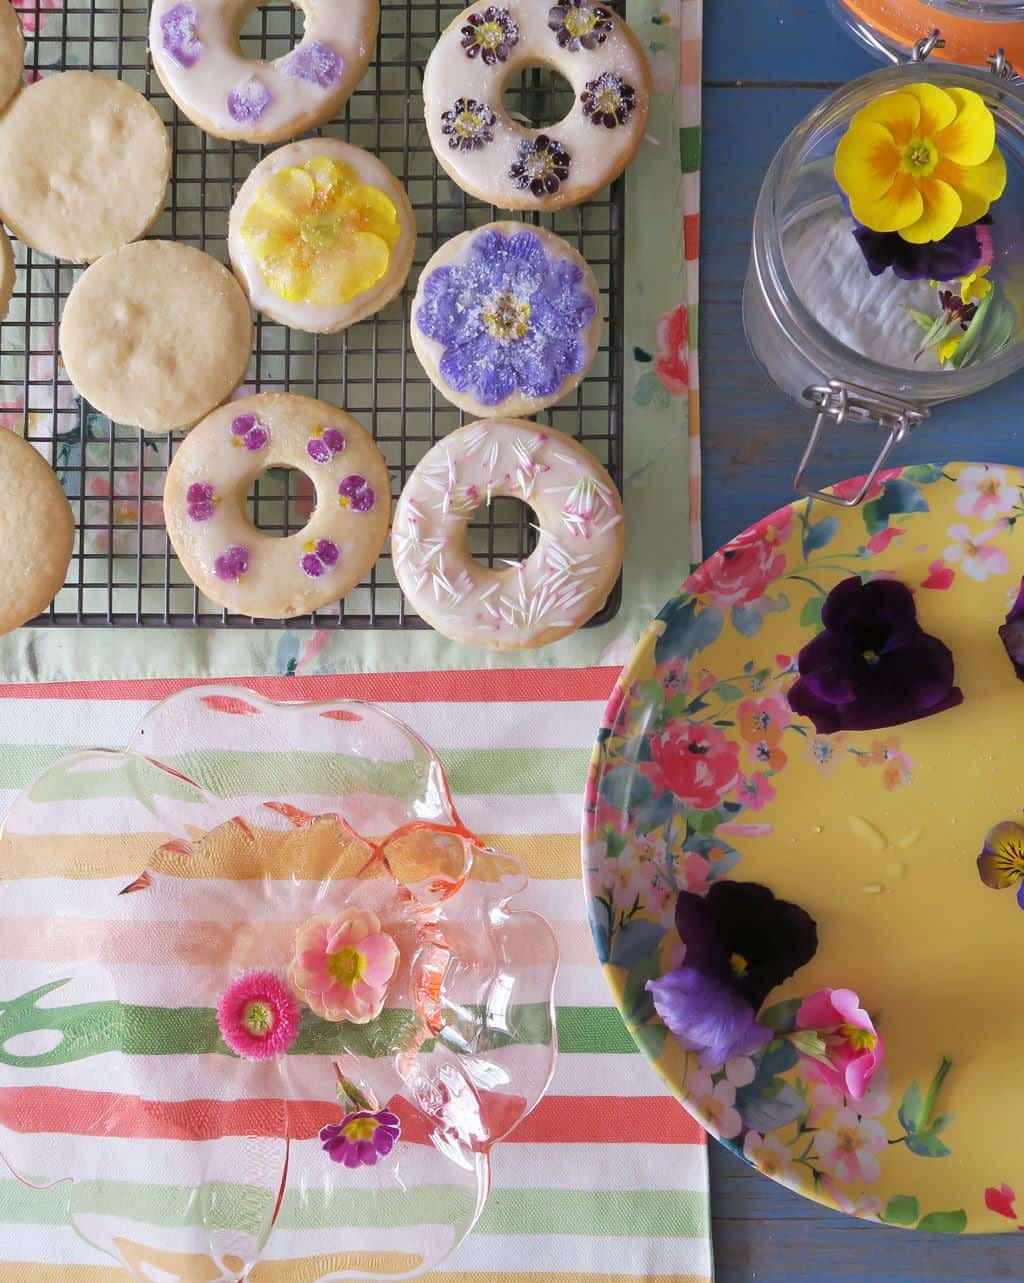 Making simple edible flower biscuits. These pressed flower cookies are so simple and easy to make — and look a million dollars!